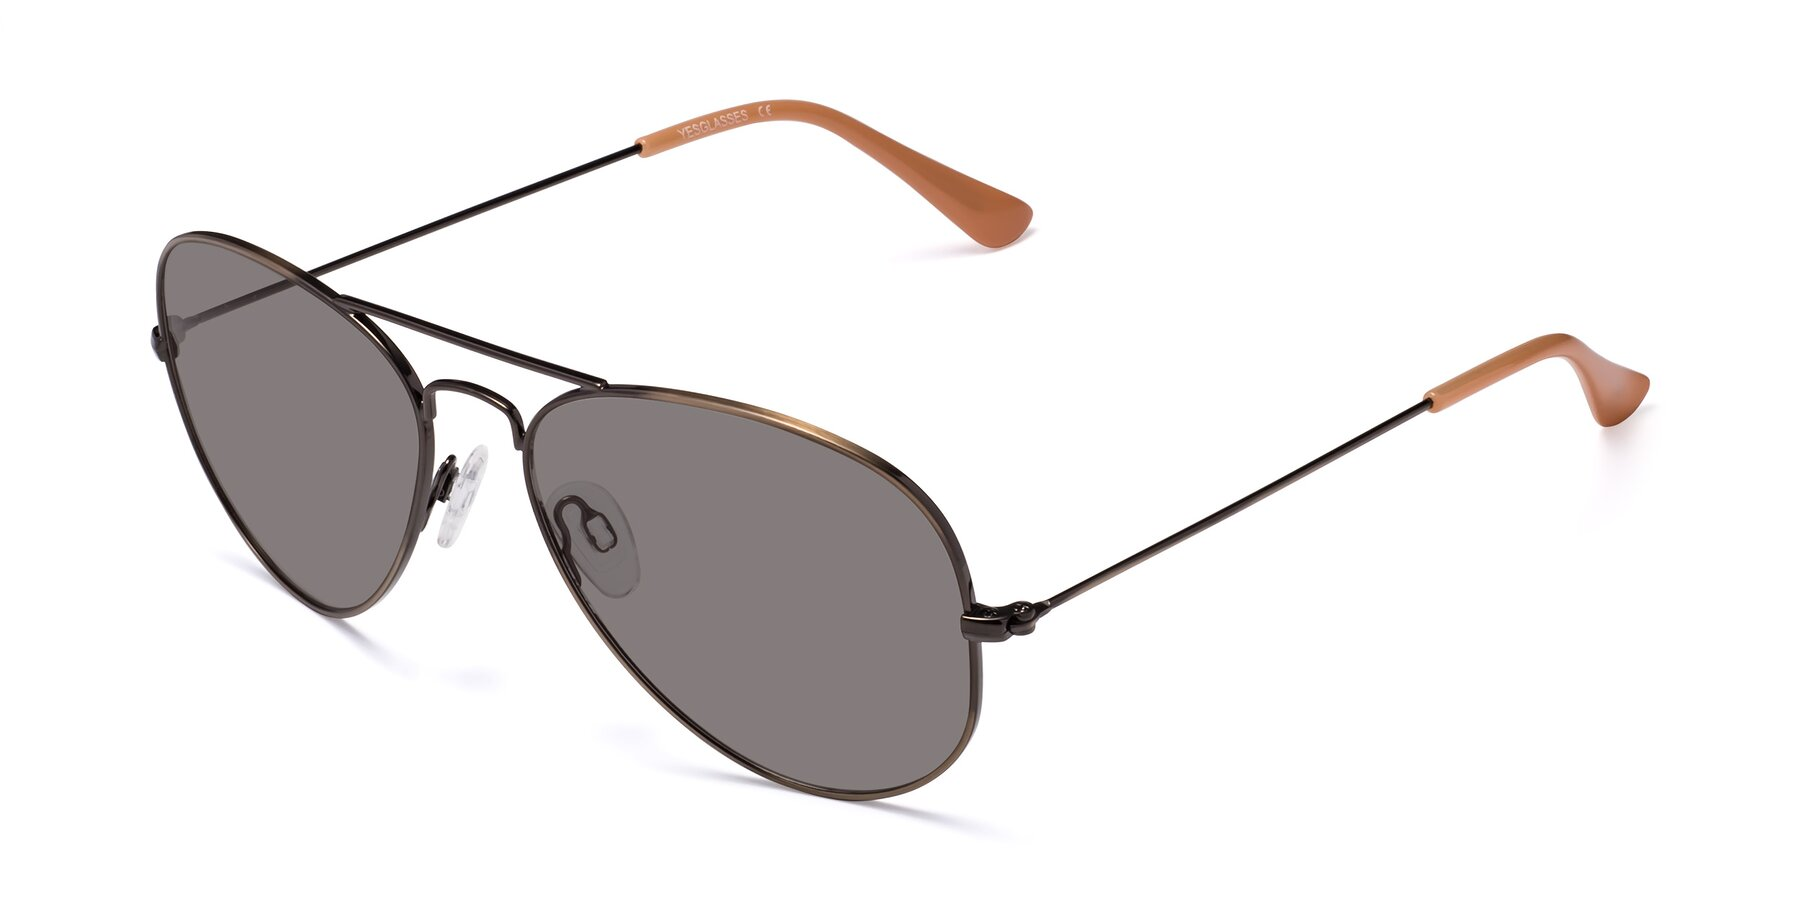 Angle of Yesterday in Antique Bronze with Medium Gray Tinted Lenses